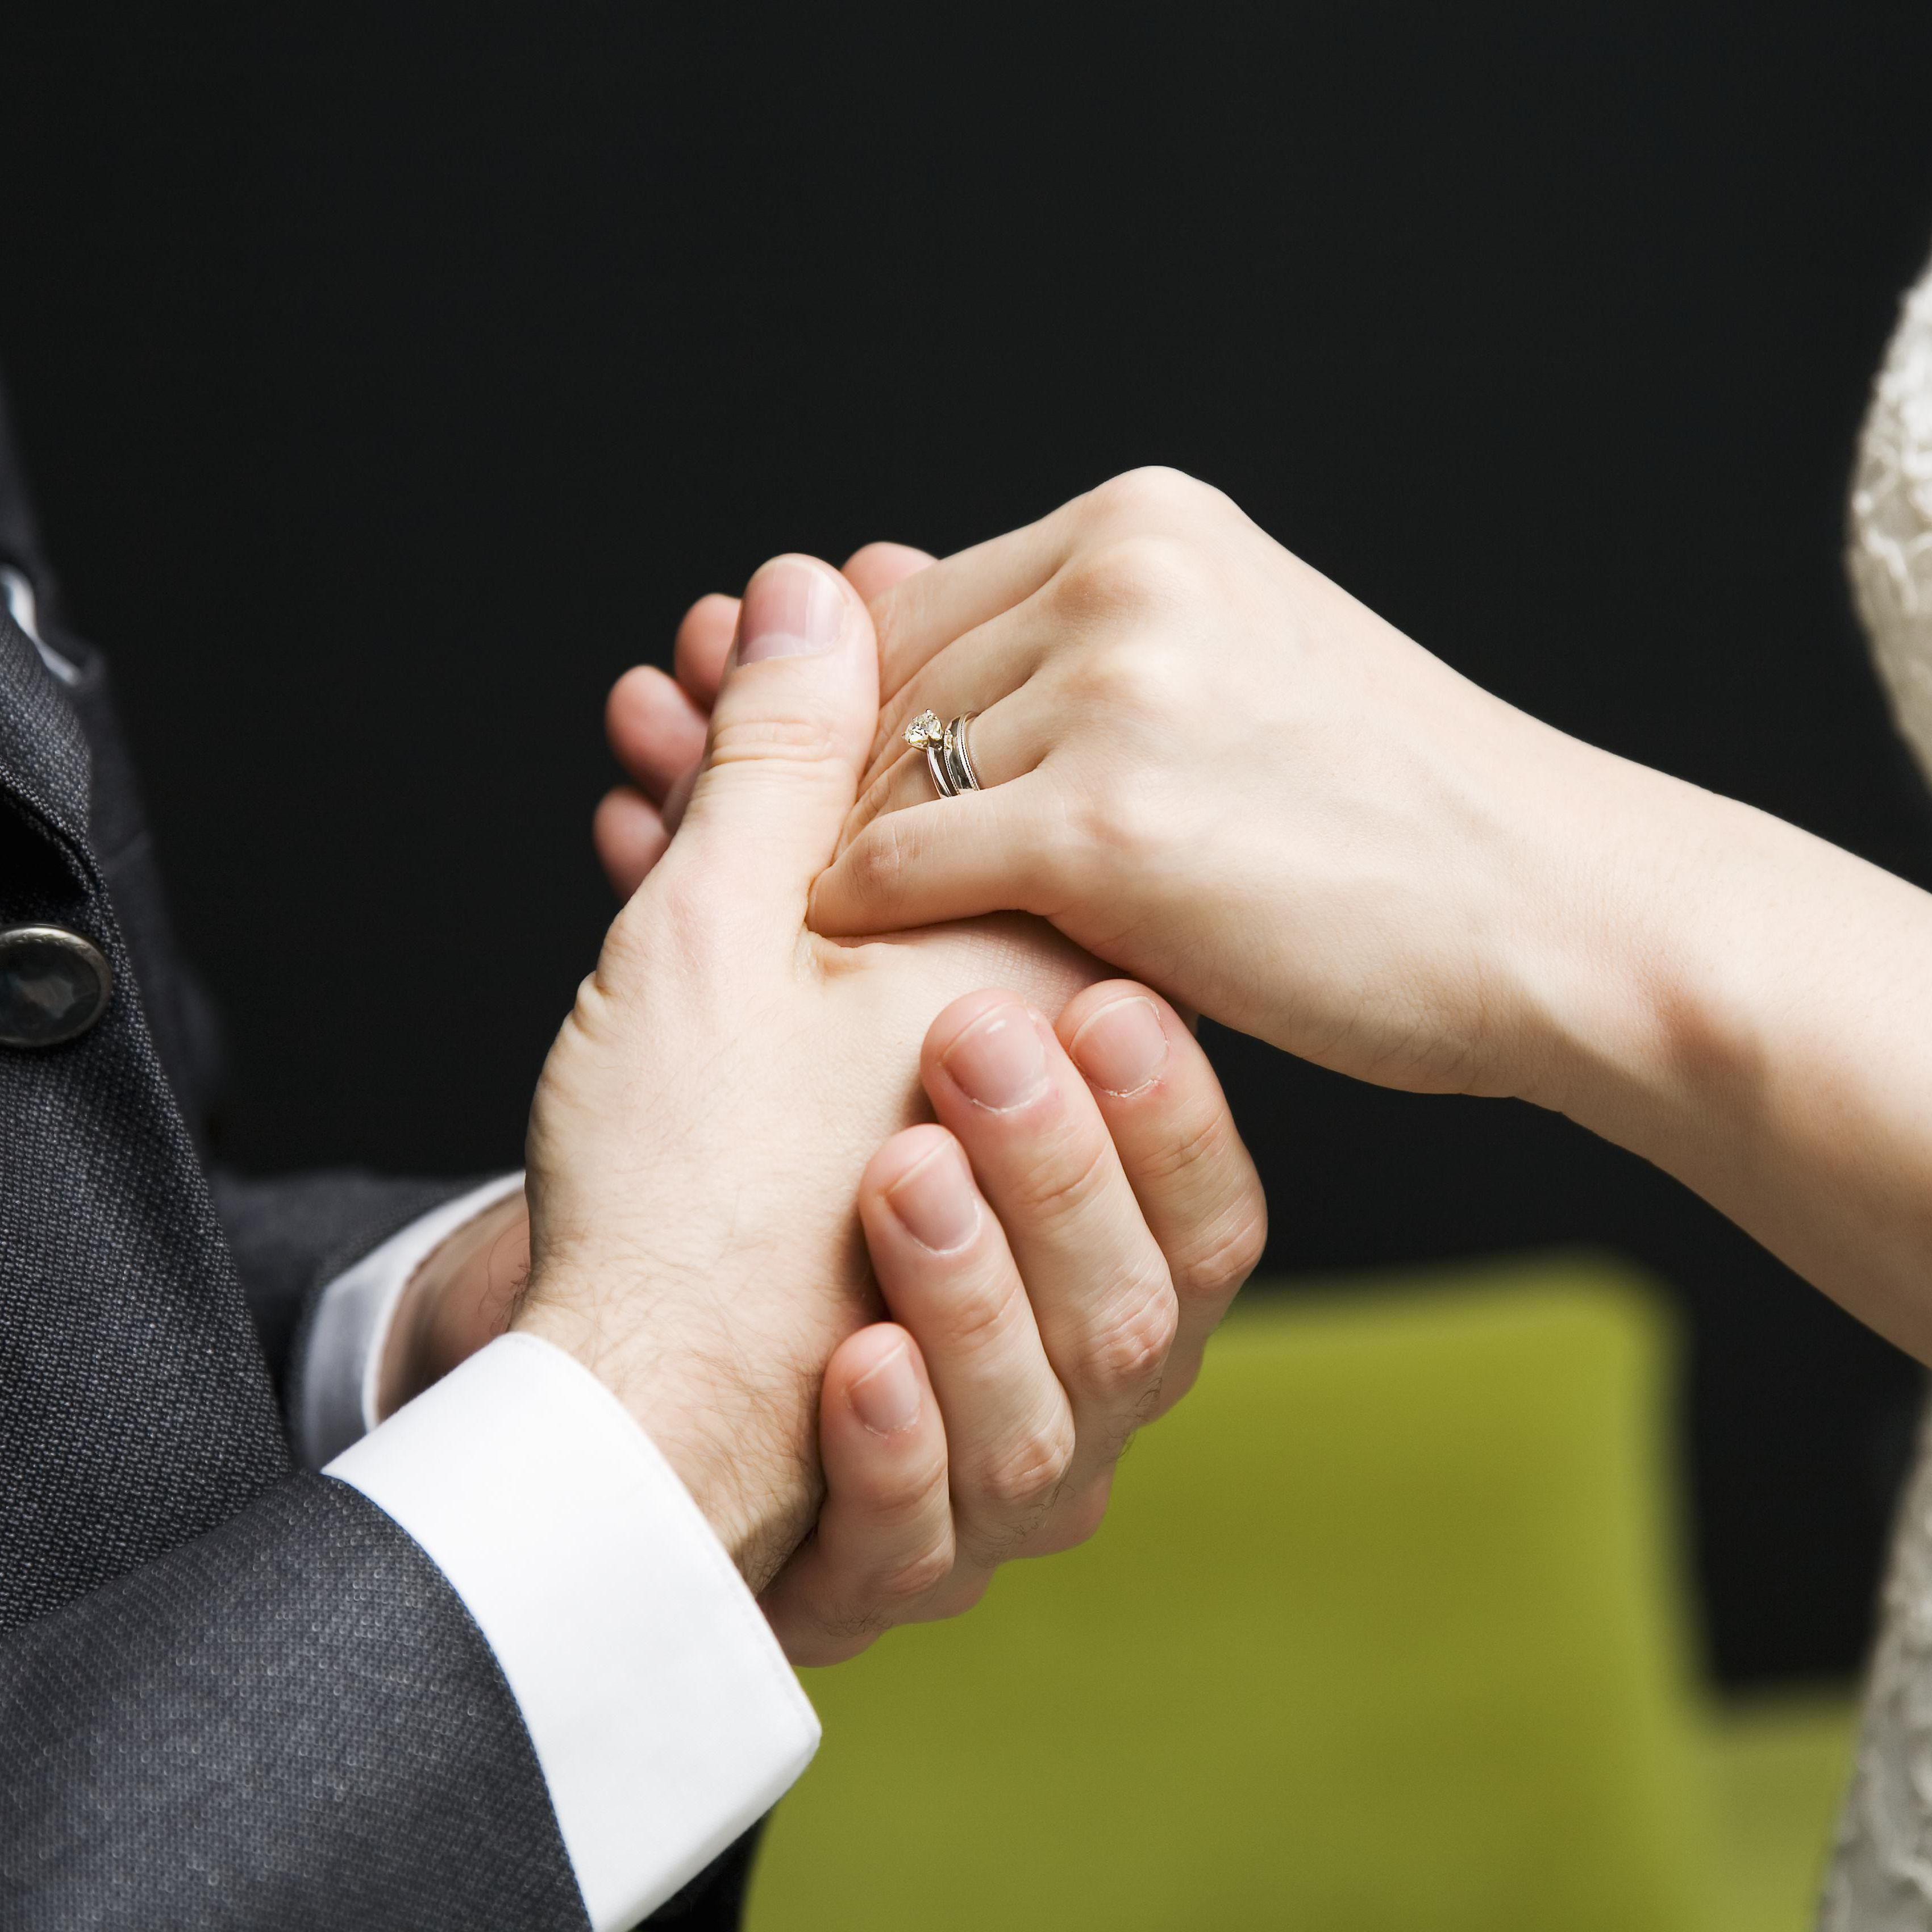 How To Renew Your Marriage Vows